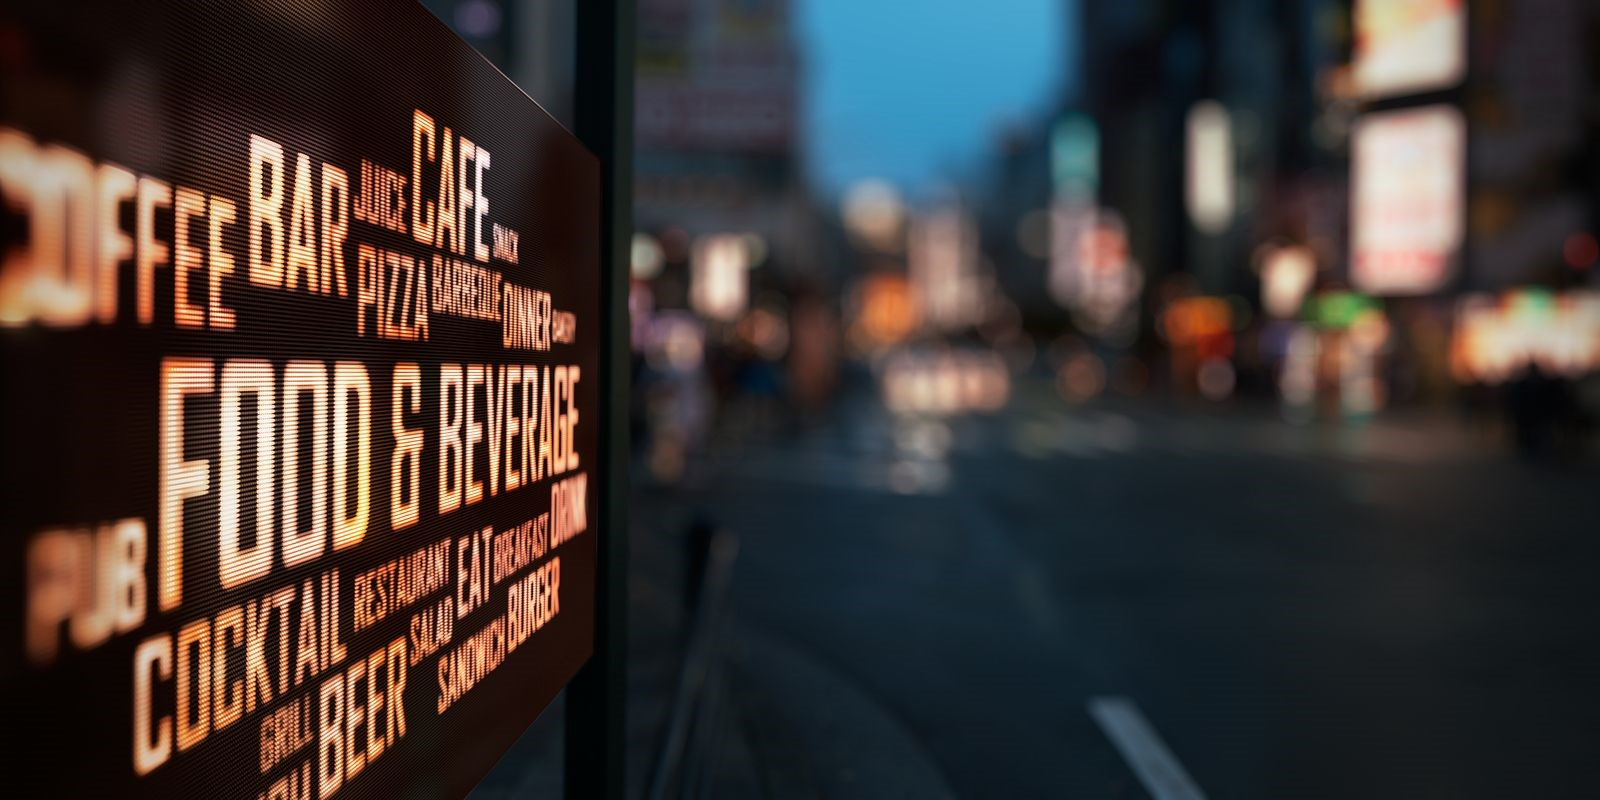 Use LED Message Signs to Display the Specials at Popular Restaurants